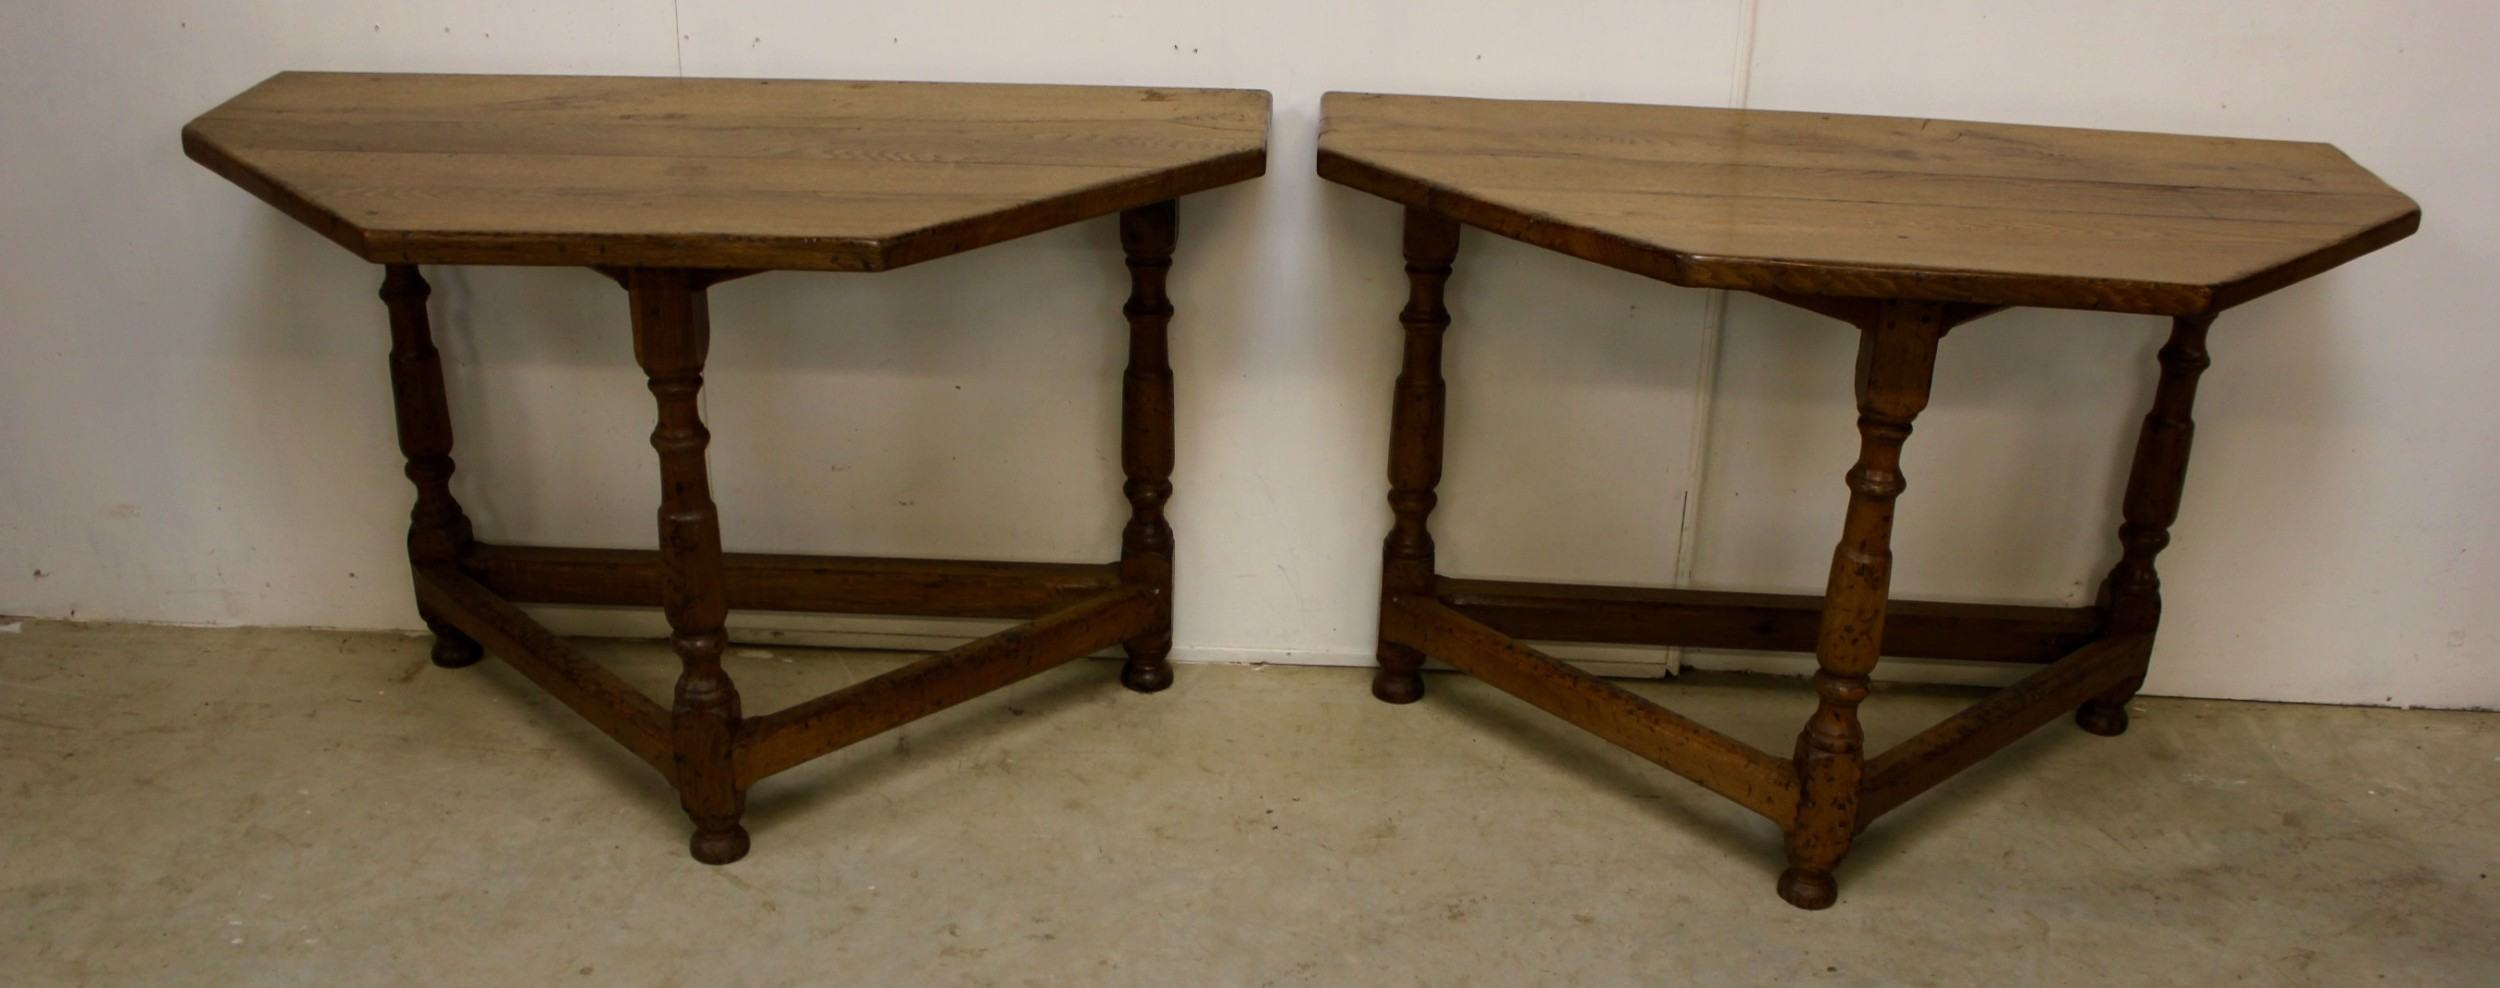 pair of oak console tables